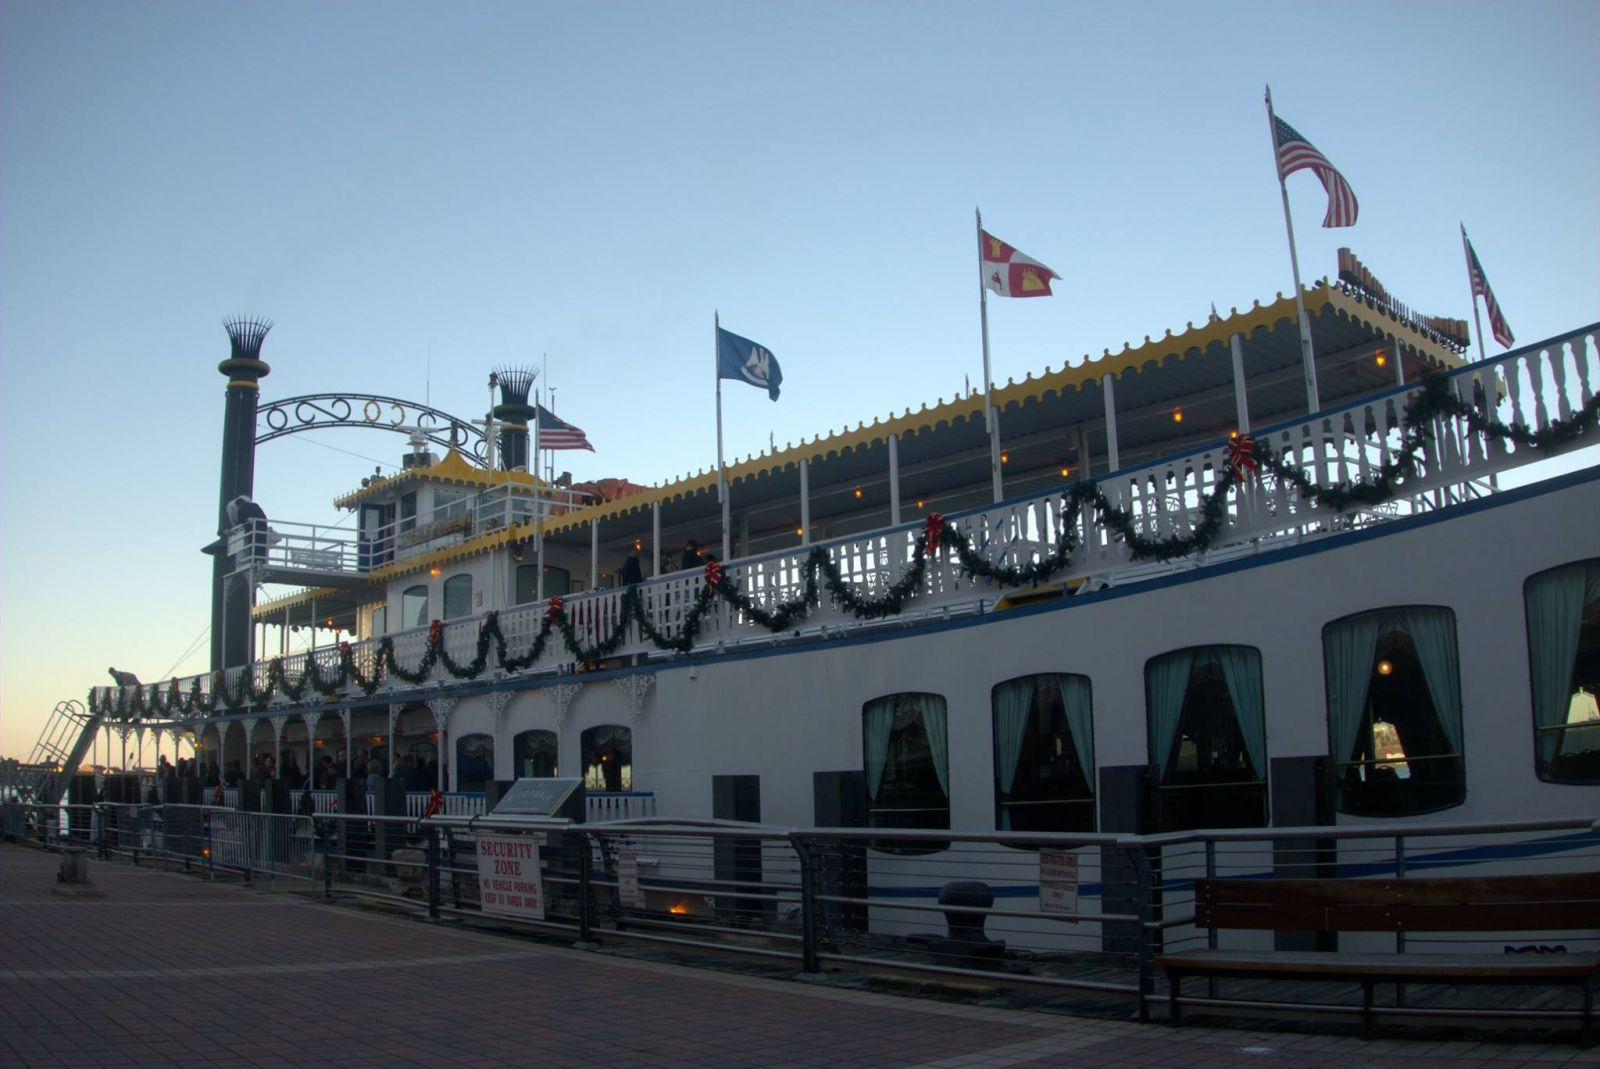 creole queen holiday cruise